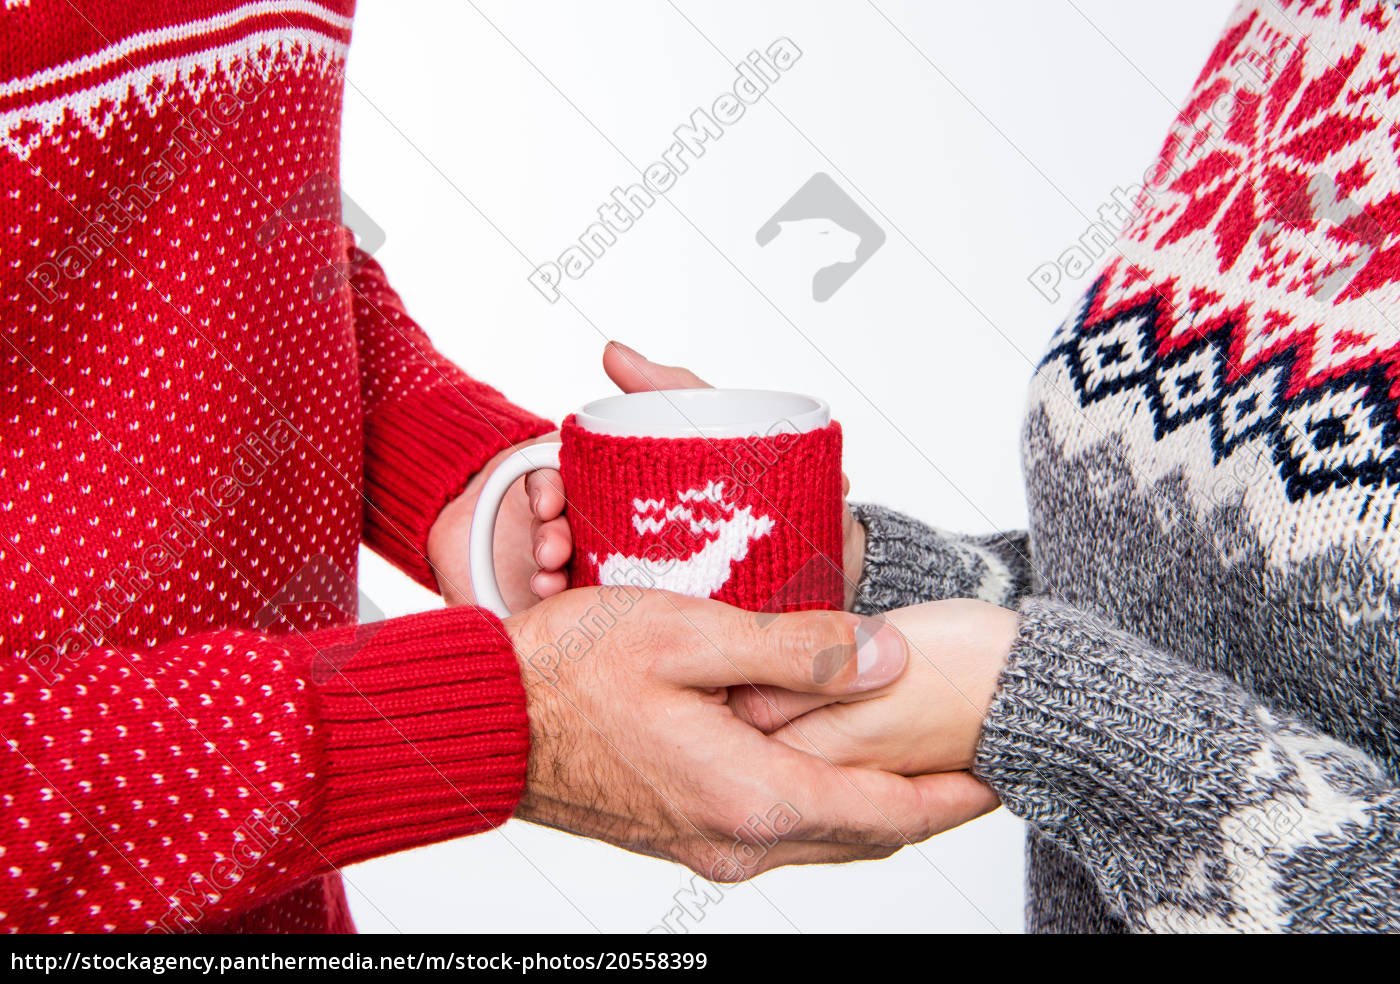 couple, holding, cup - 20558399